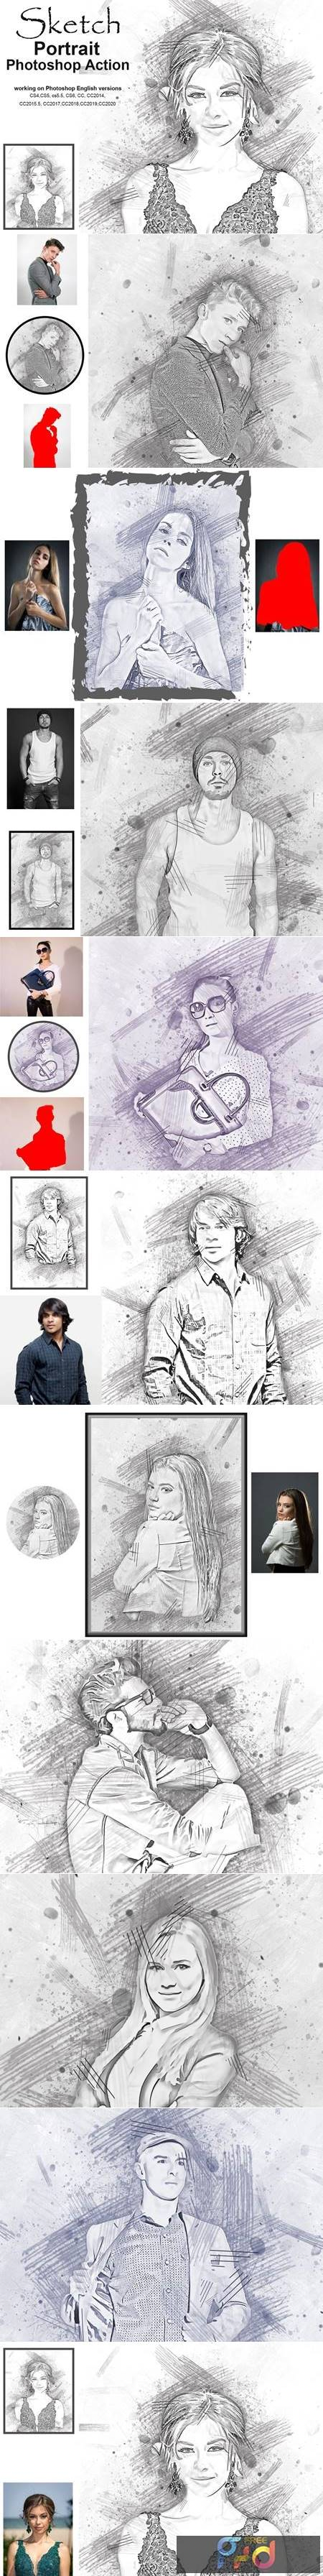 Sketch Portrait Photoshop Action 5203548 1